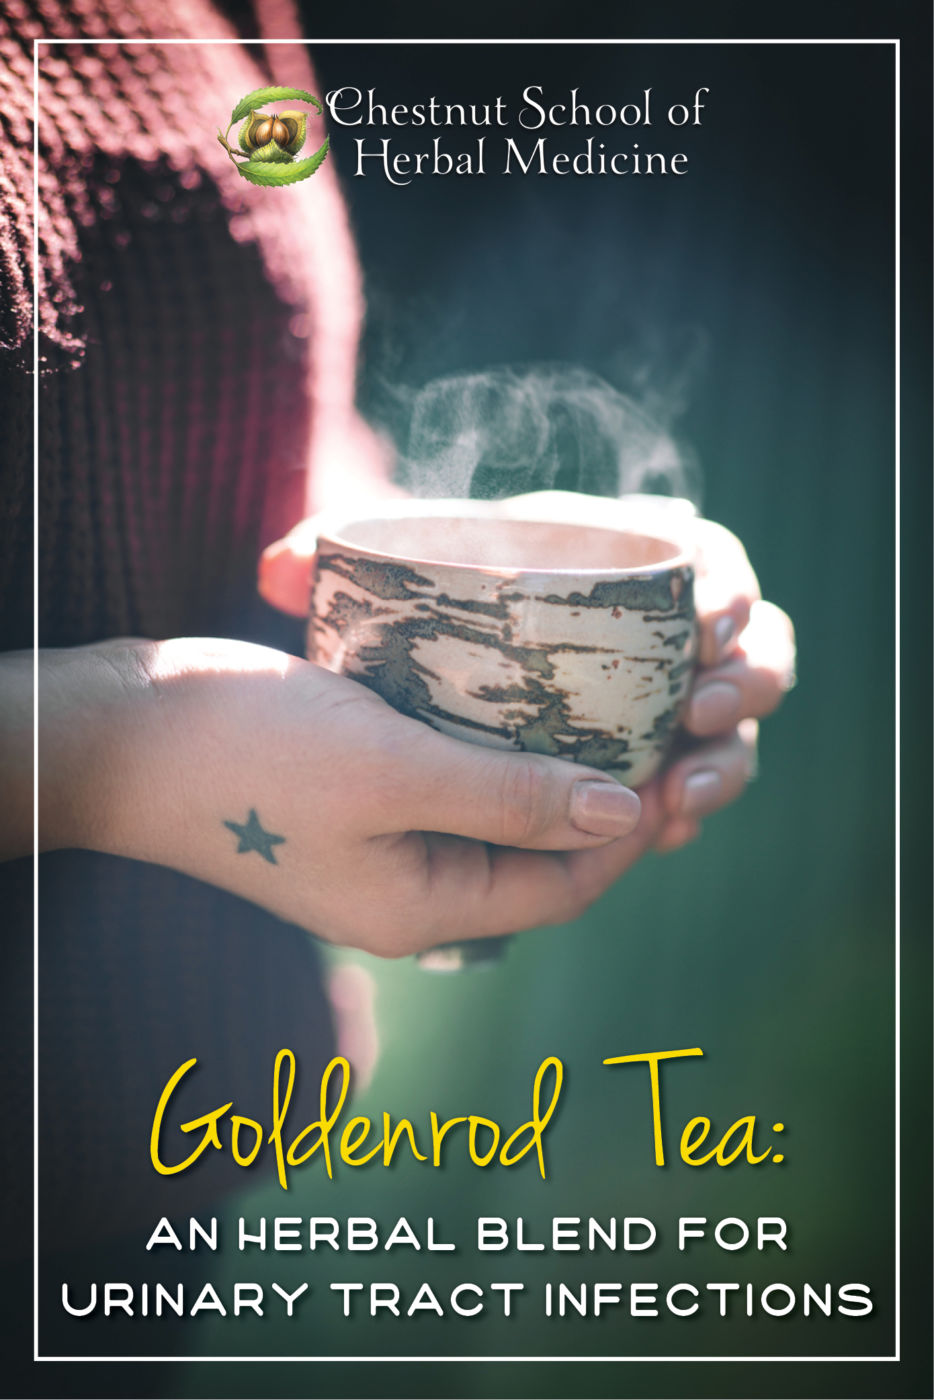 Goldenrod Tea An Herbal Blend for Urinary Tract Infections